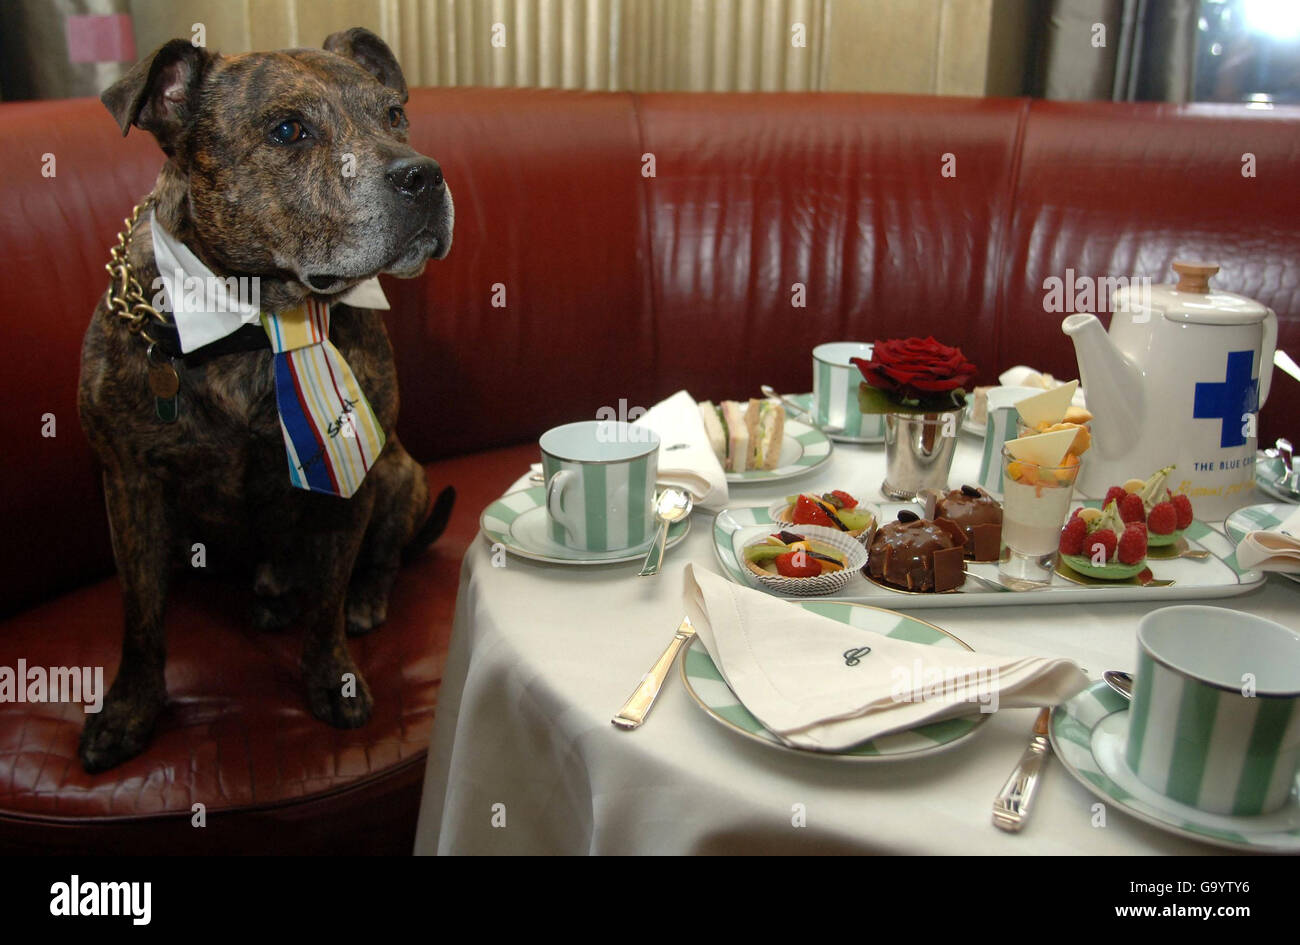 The Blue Cross Launching Britain's Biggest Tea Party for Pets - Stock Image